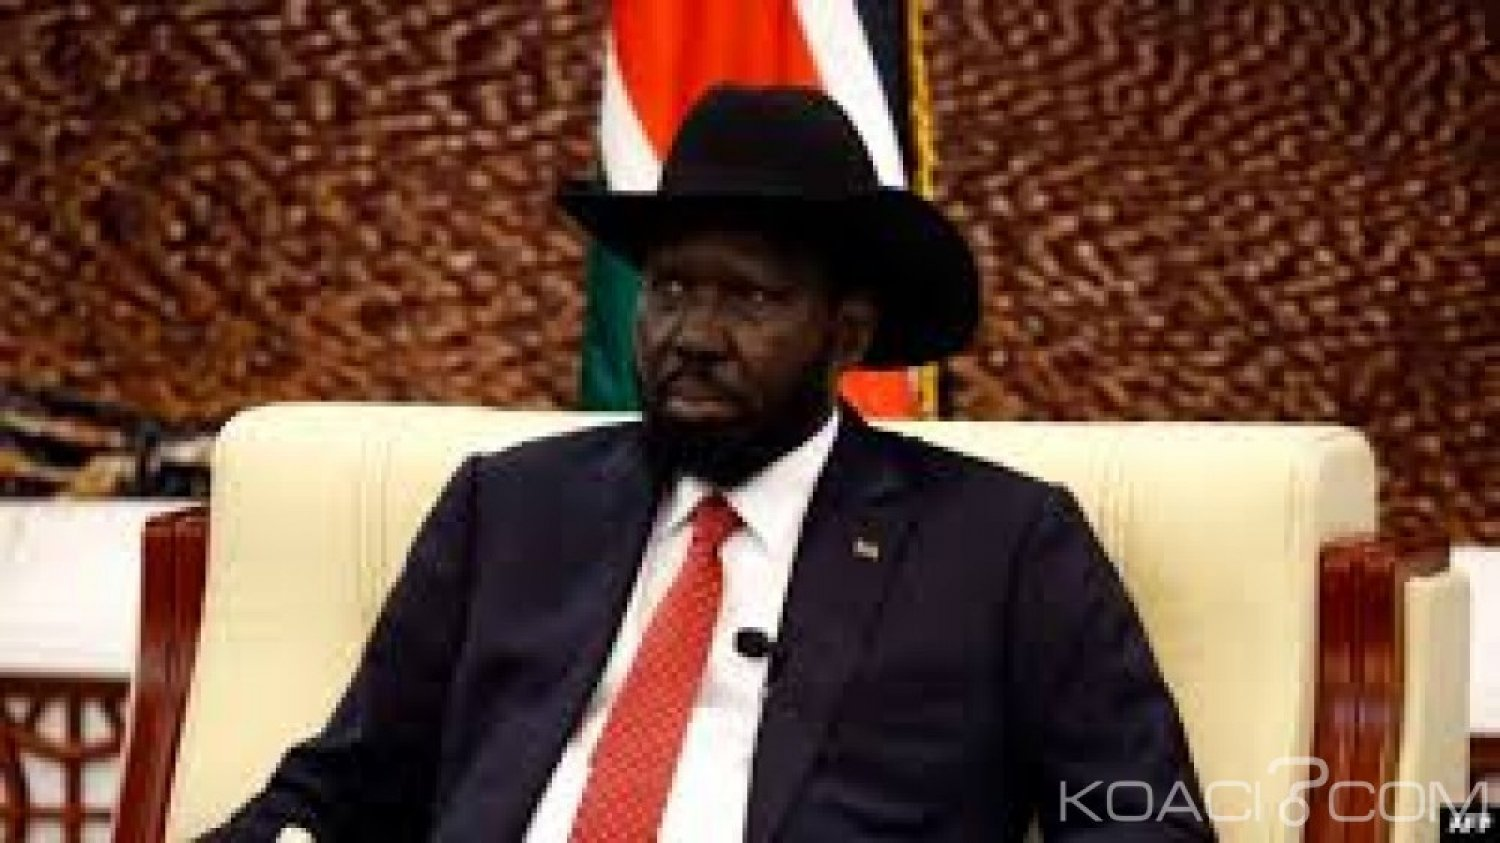 Soudan du Sud:  Interdiction de jouer l'hymne national en l'absence du Président Kiir